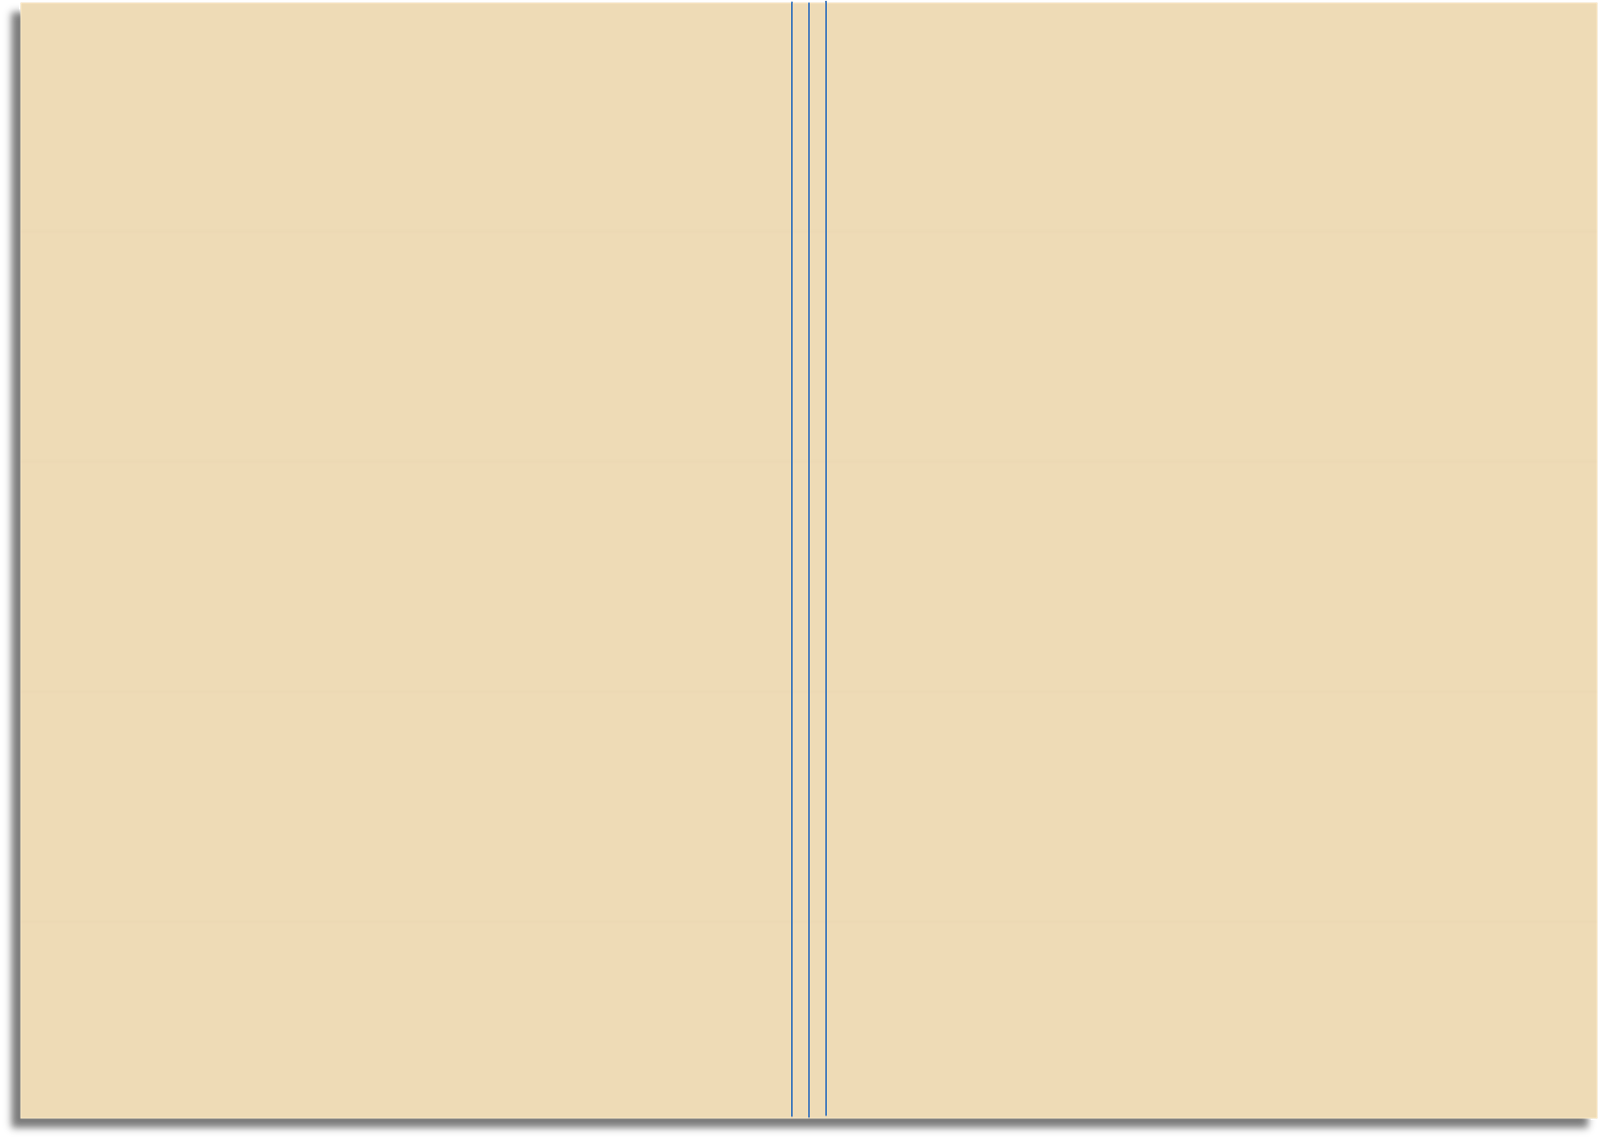 Drawing Vertical Lines In Html : My life all in one place diy field notes size kraft file